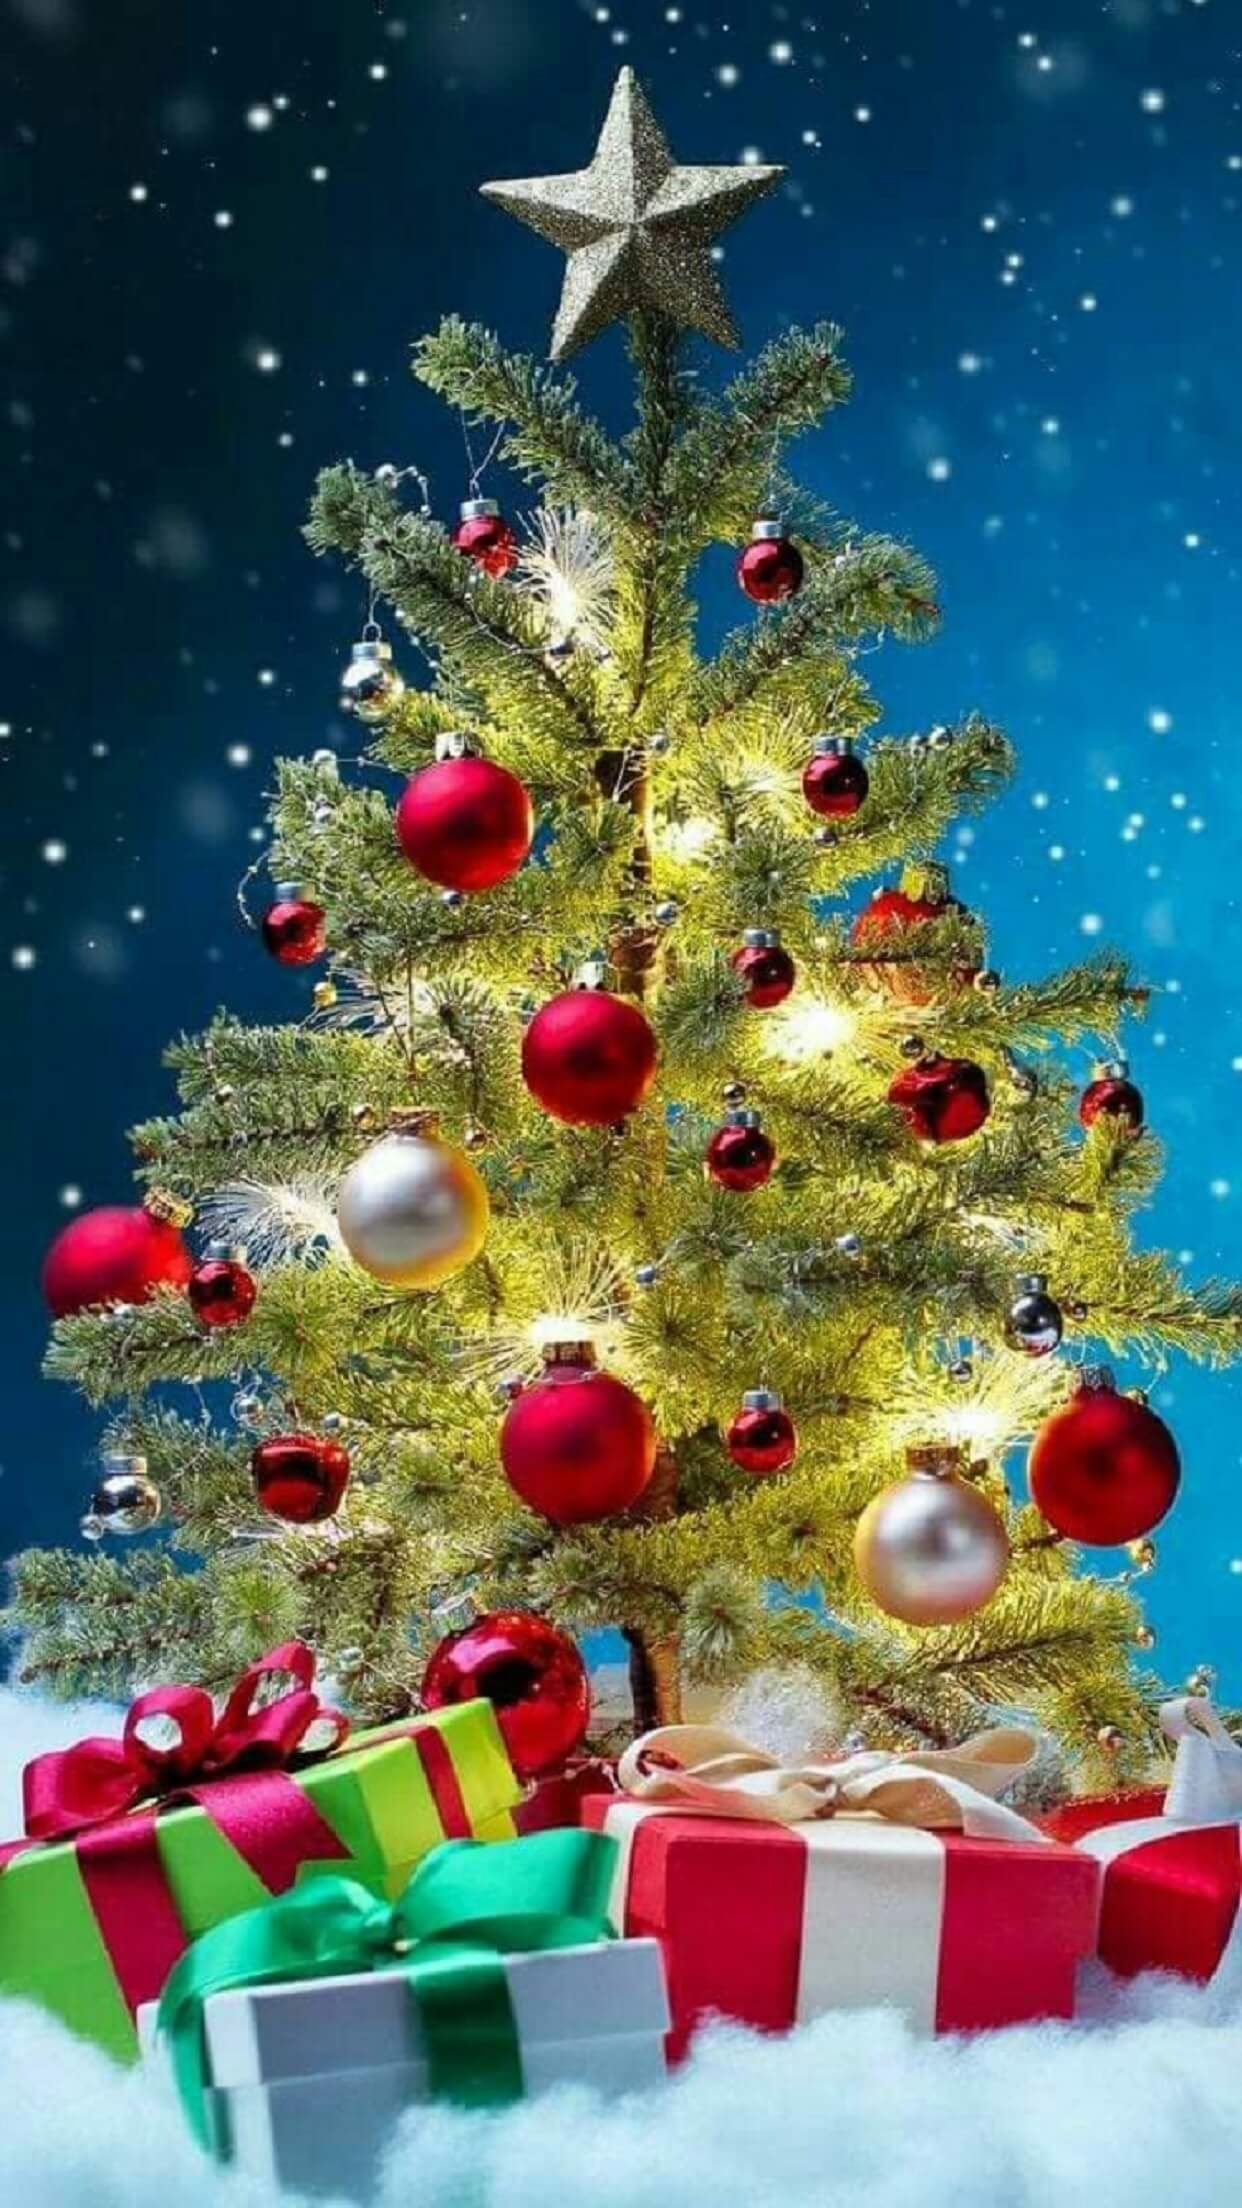 Free Download 32 Christmas Wallpapers For Iphones 1242x2208 For Your Desktop Mobile Tablet Explore 58 Wallpaper Of Christmas 3d Christmas Wallpaper Christmas Wallpapers Backgrounds Christmas Wallpaper For Computer